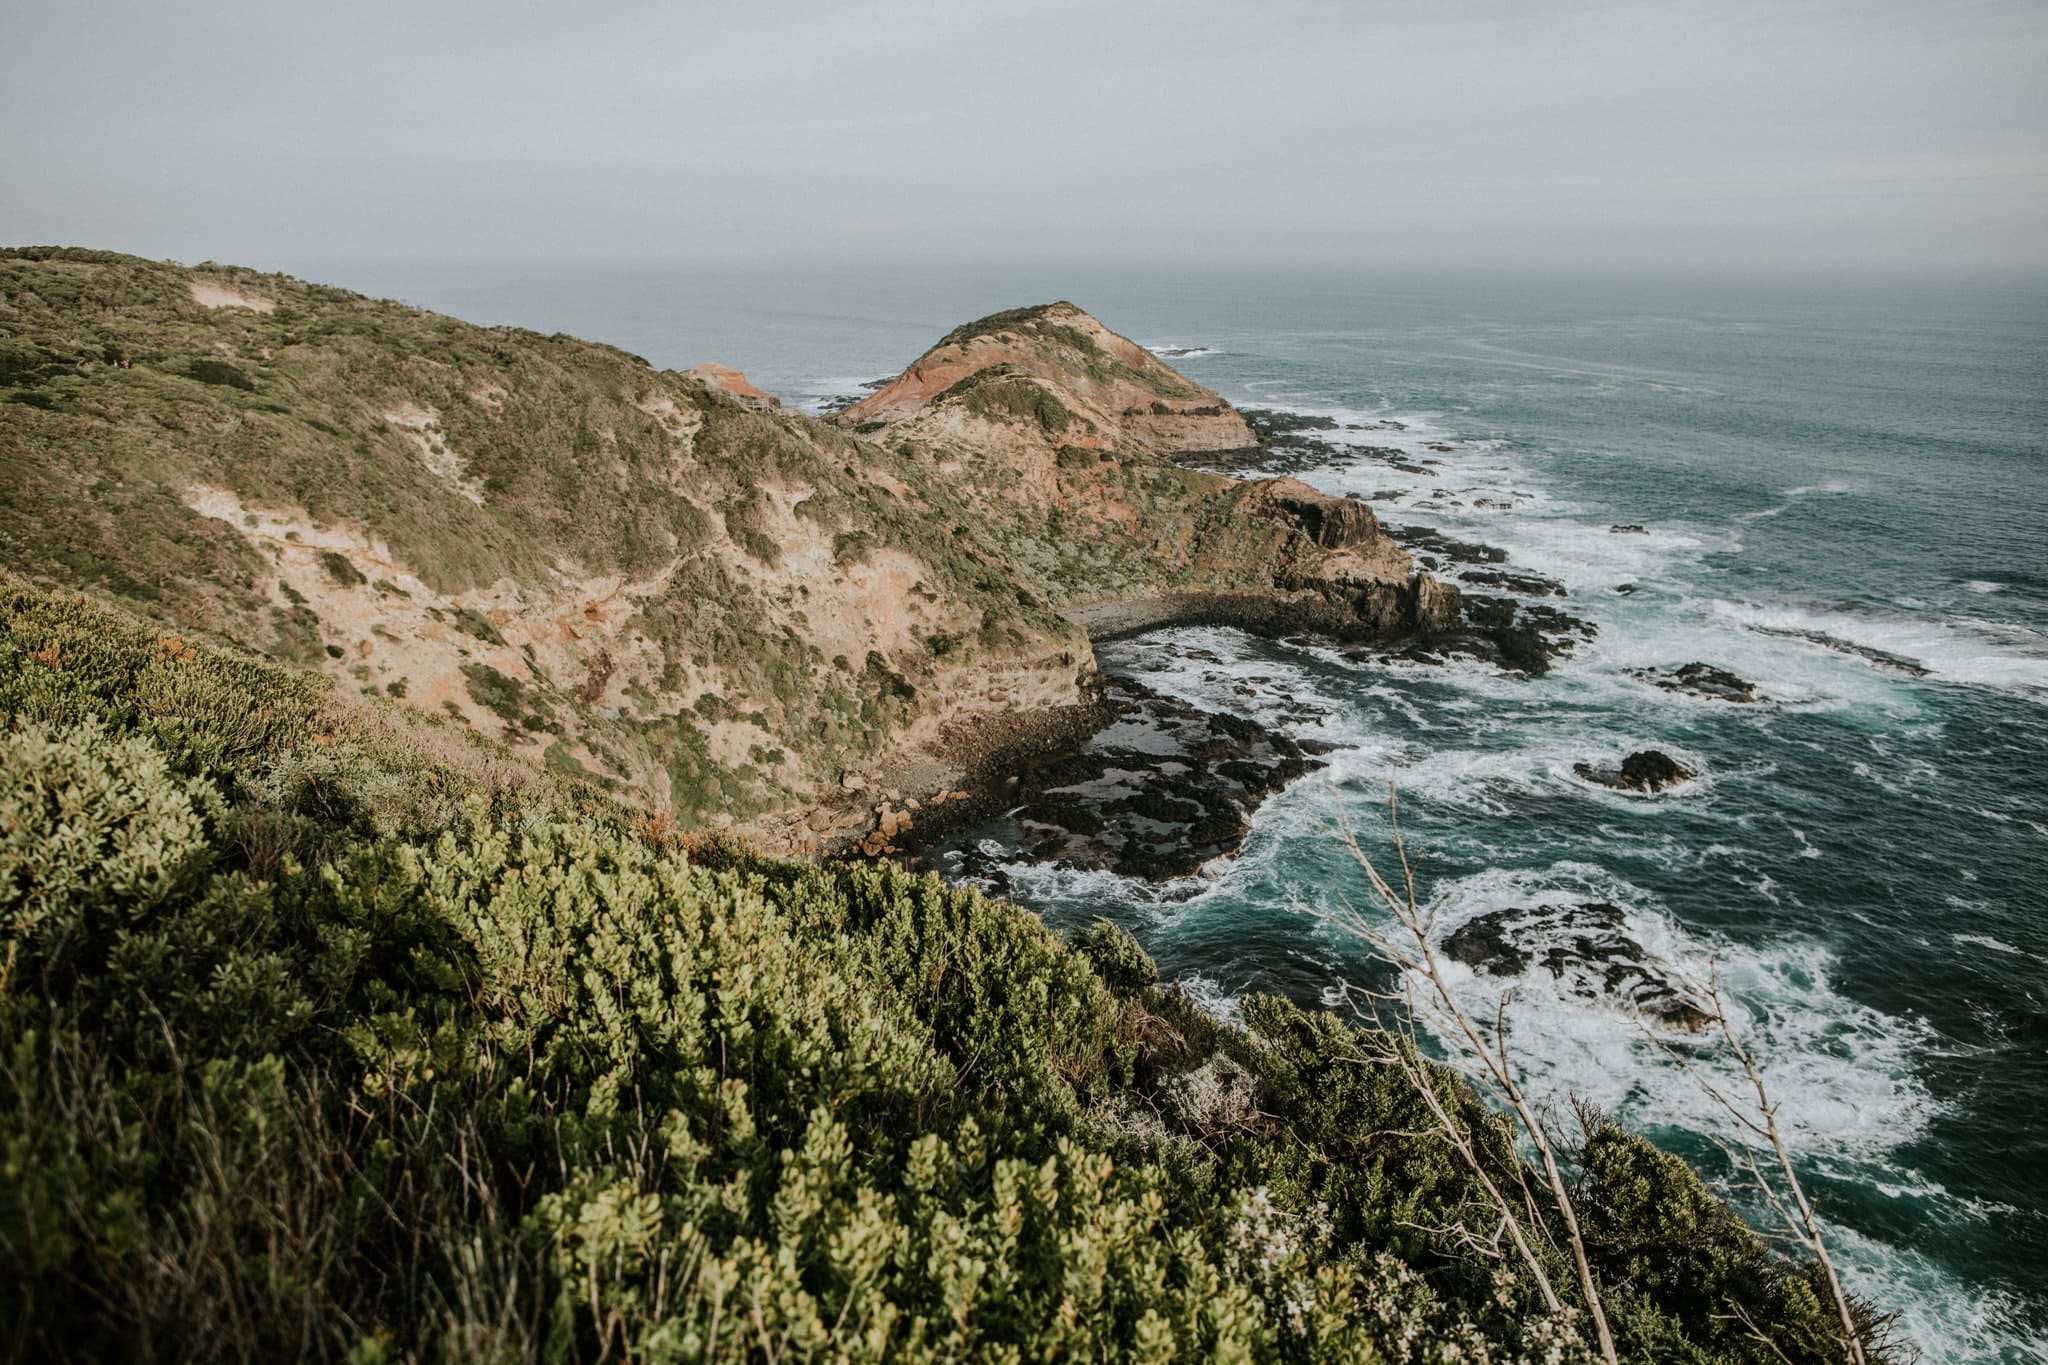 cape schanck - coastline australia - nature weddings